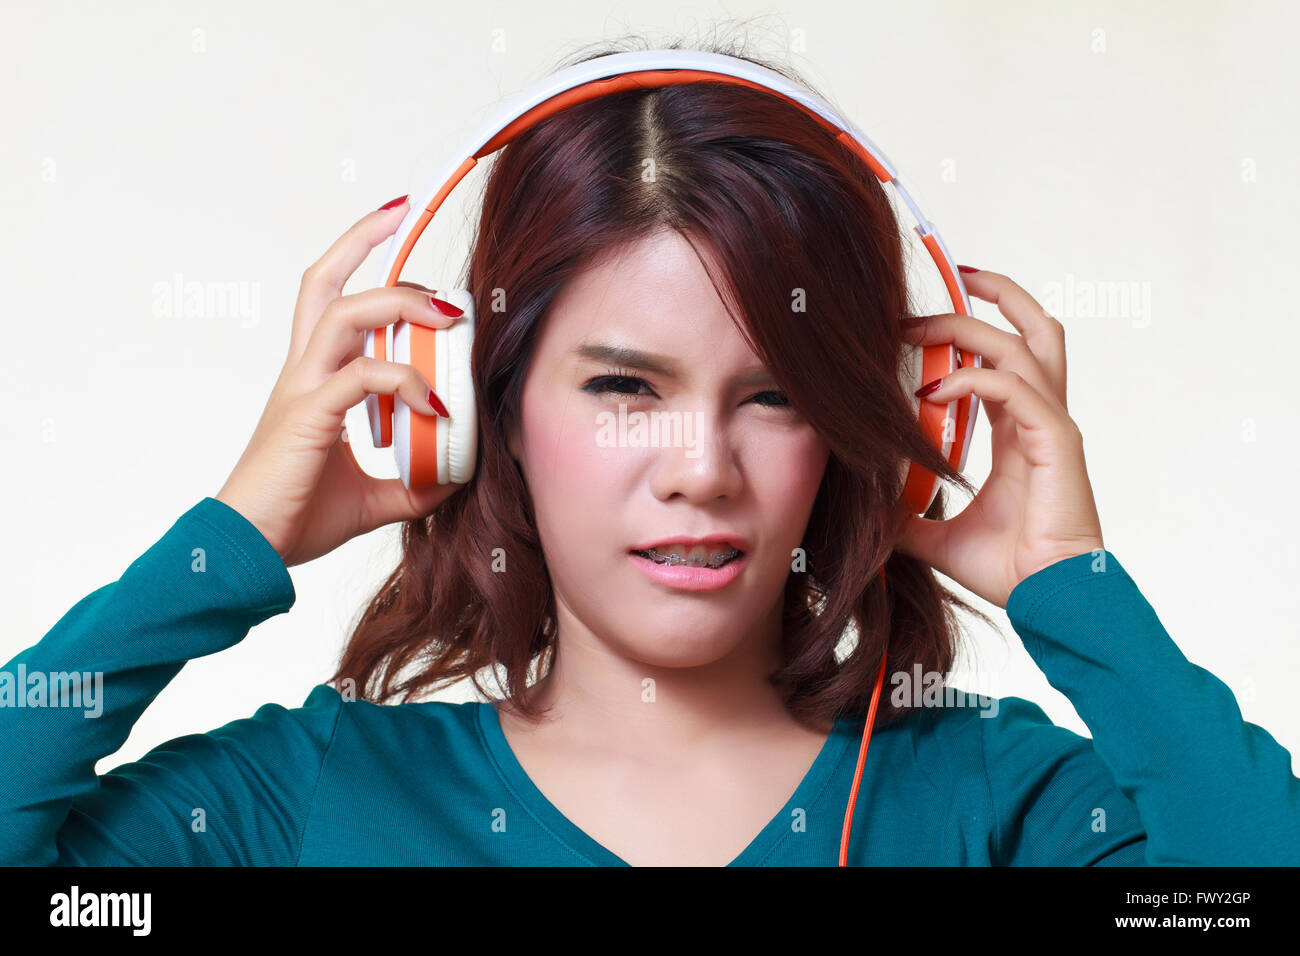 Portrait Of Beautiful Young Woman With Earphones Listening A Bad Stock Photo Alamy